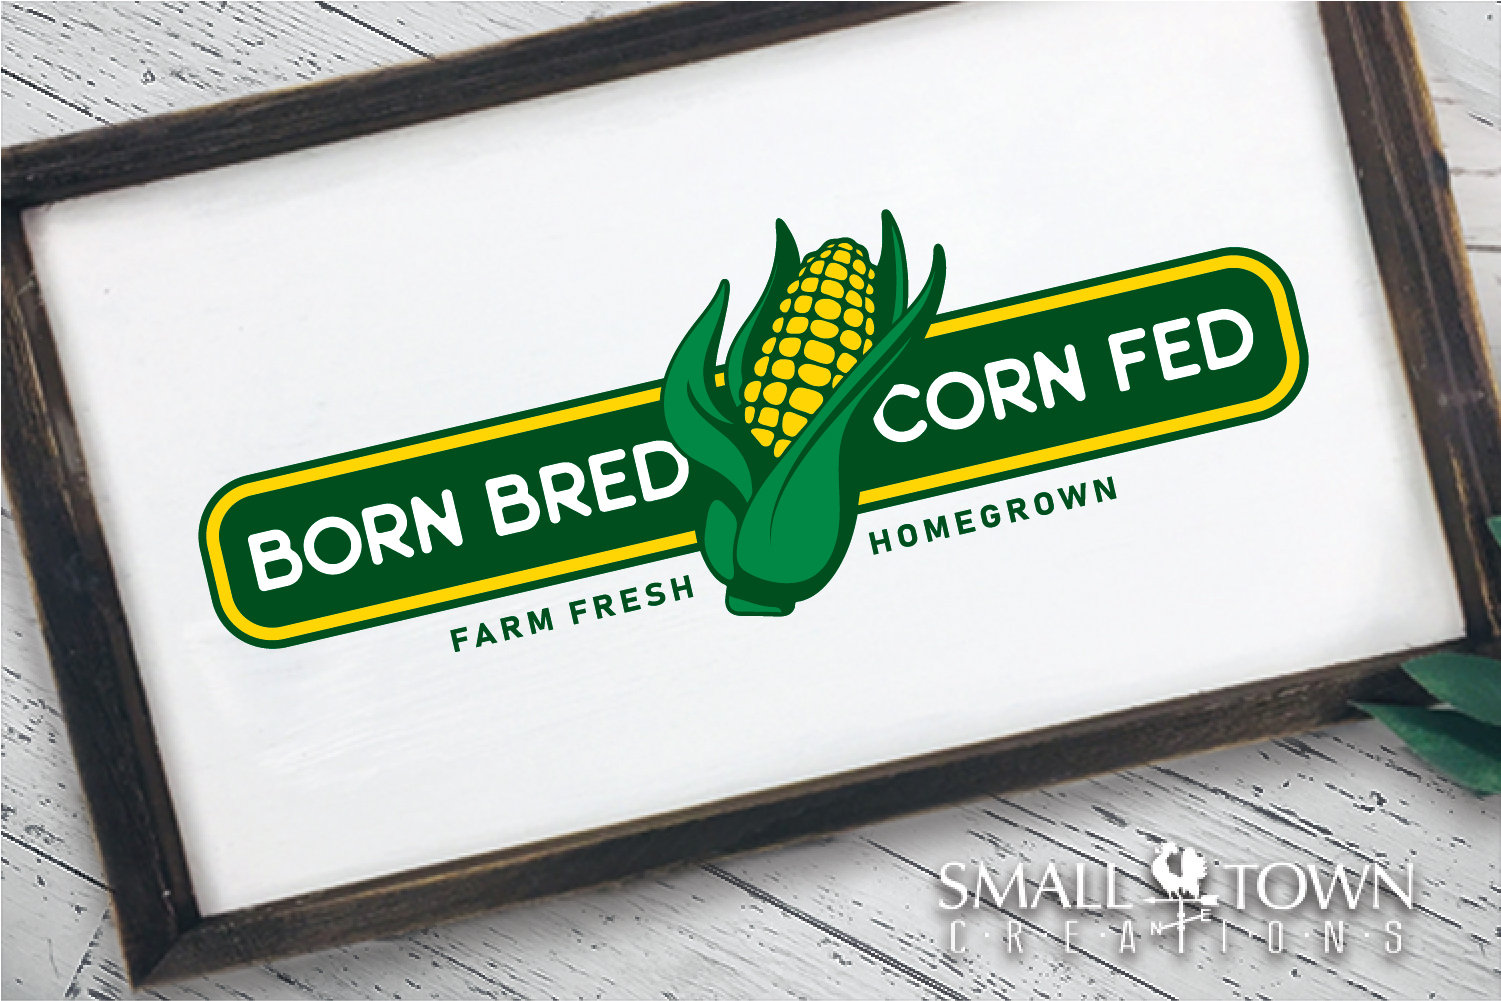 Born Bred Corn Fed, Homegrown, Farm Fresh PRINT, & DESIGN example image 1